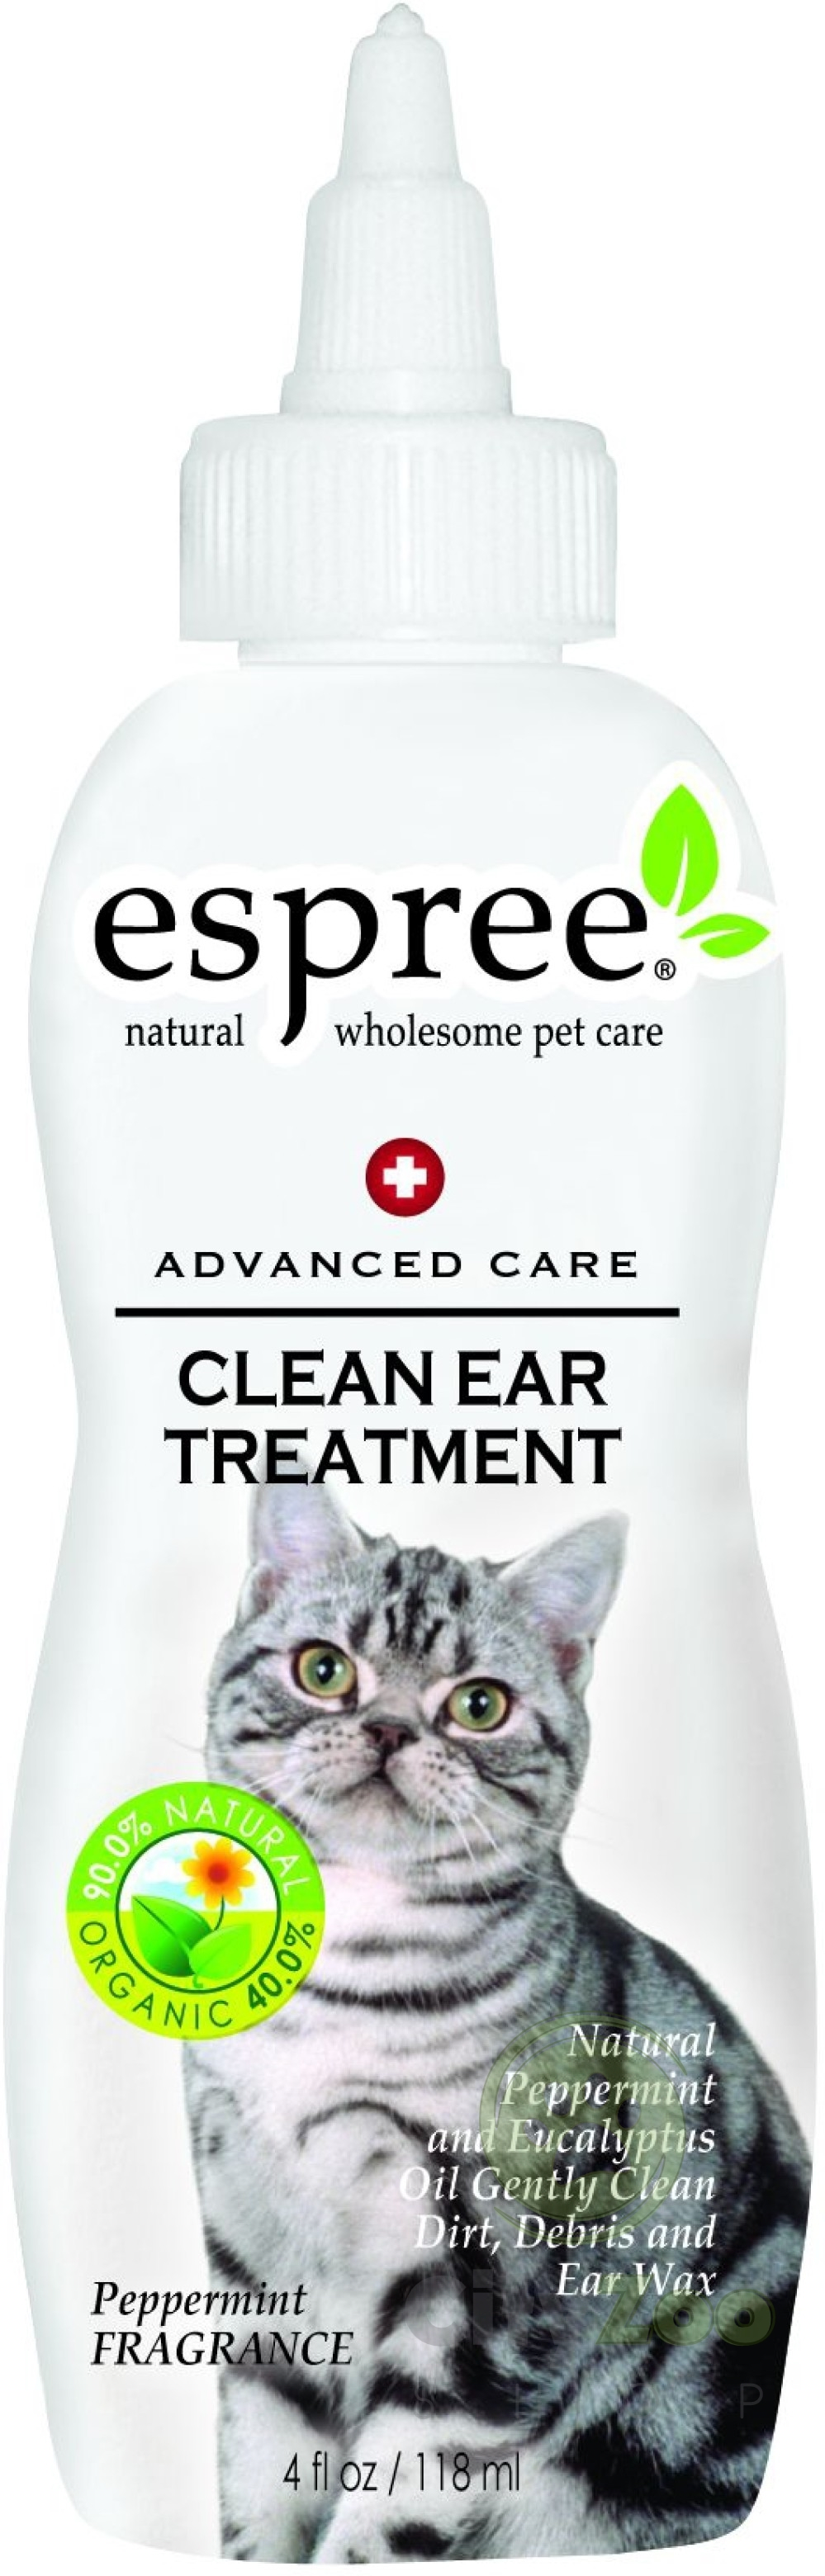 zoo/Espree_Clean_Ear_Treatment_Cat